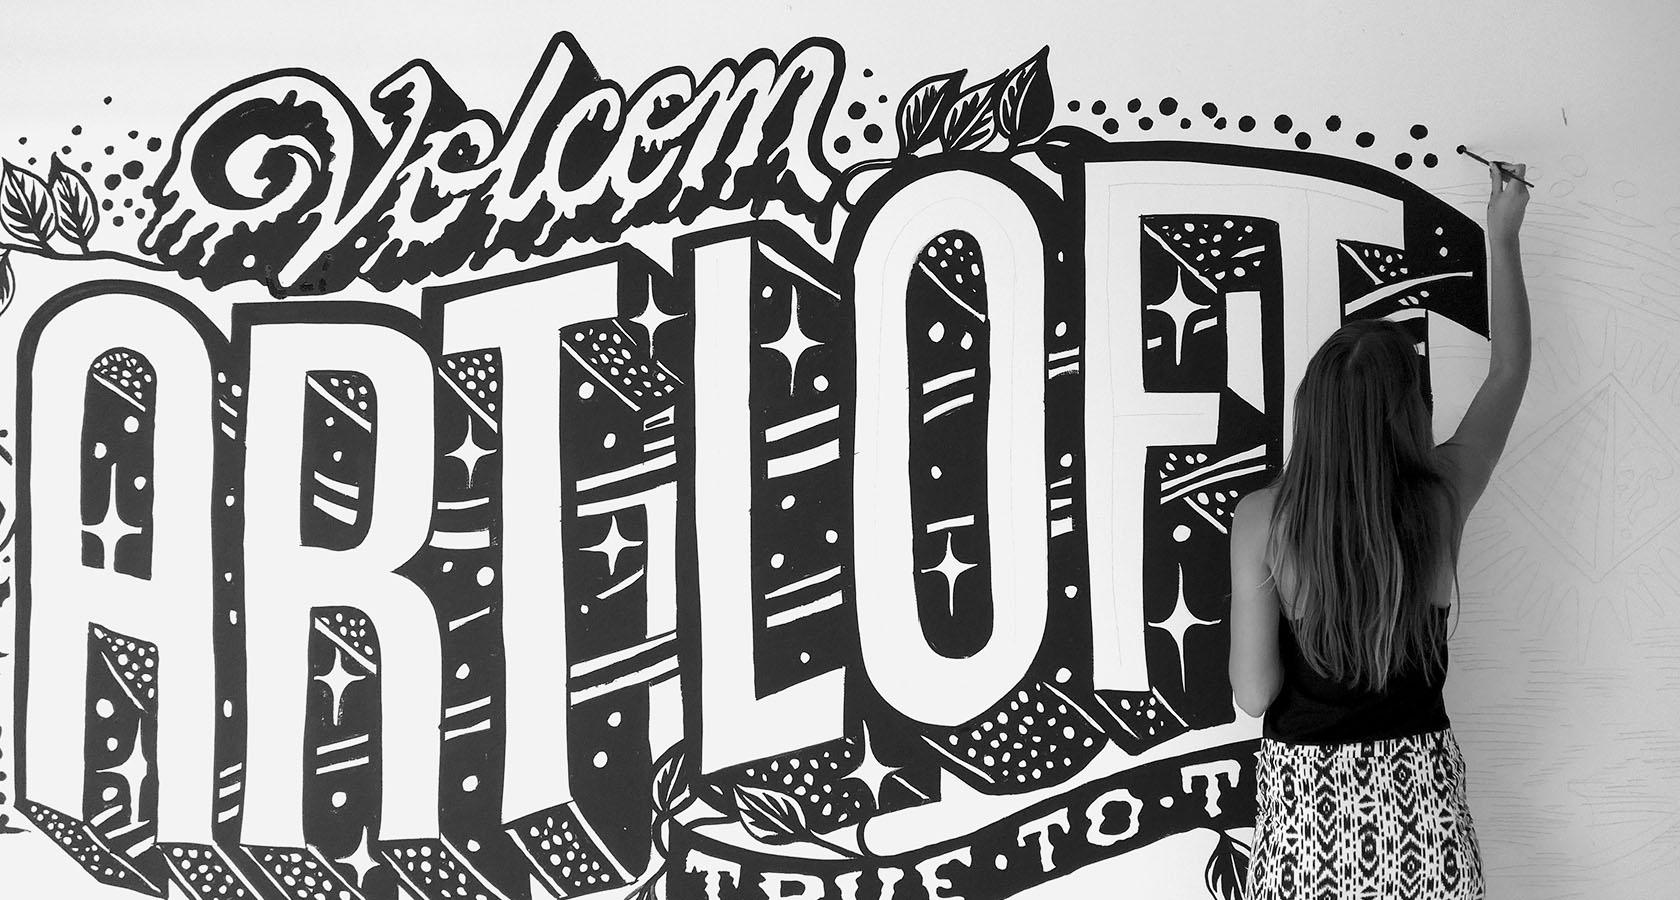 gemma o'brien hand painted volcom artloft mural